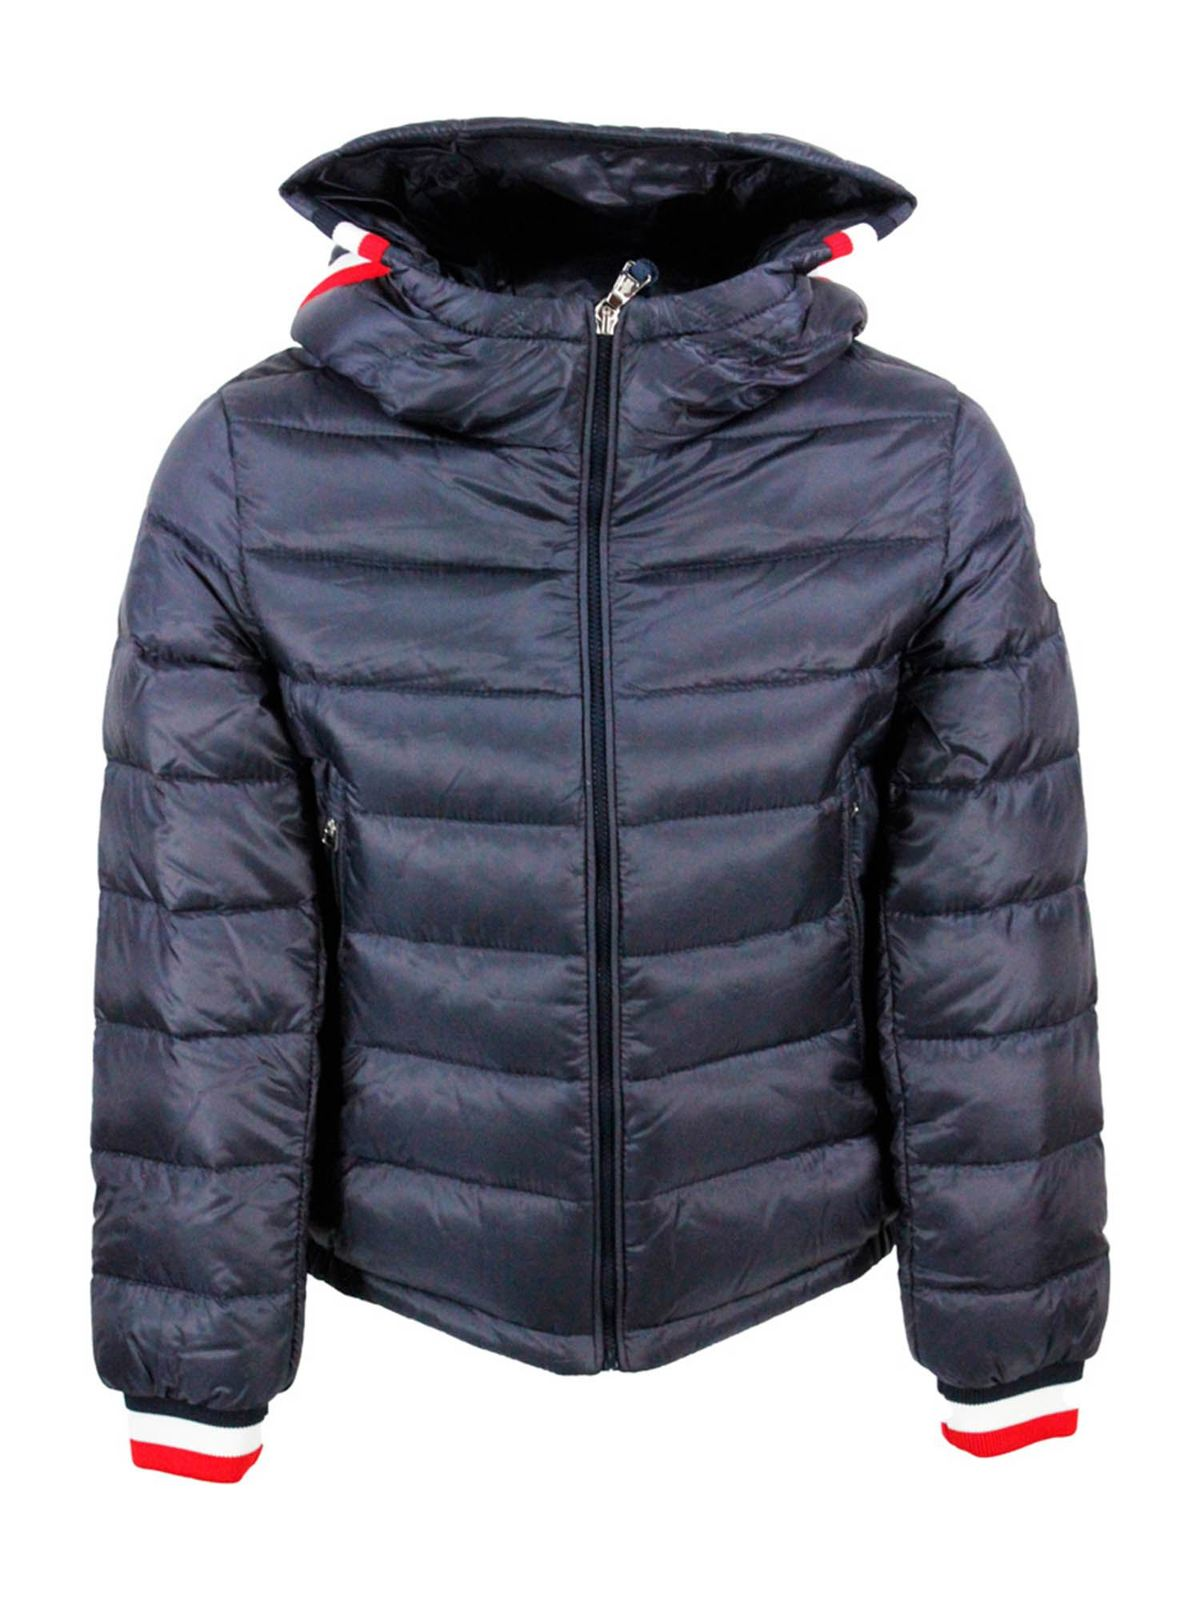 Moncler GIROUX DOWN JACKET IN BLUE